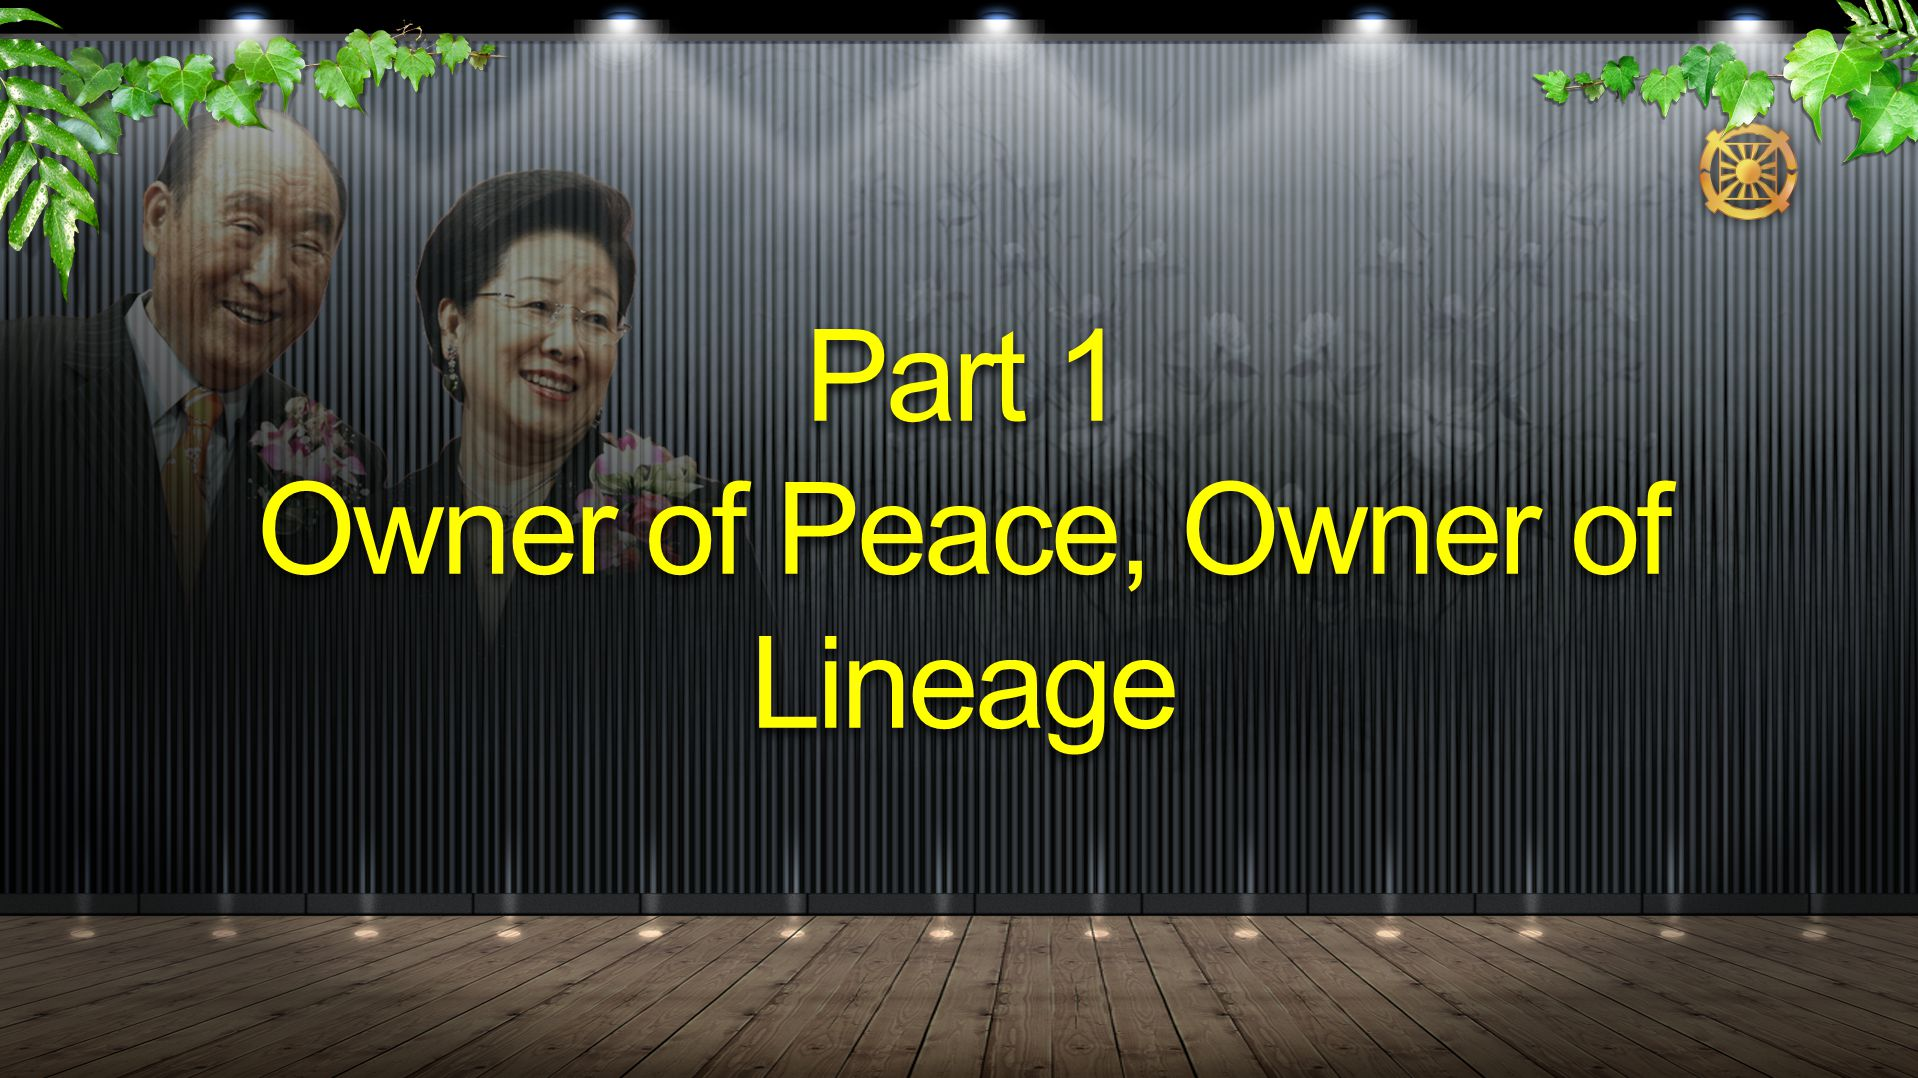 Part 1 Owner of Peace, Owner of Lineage